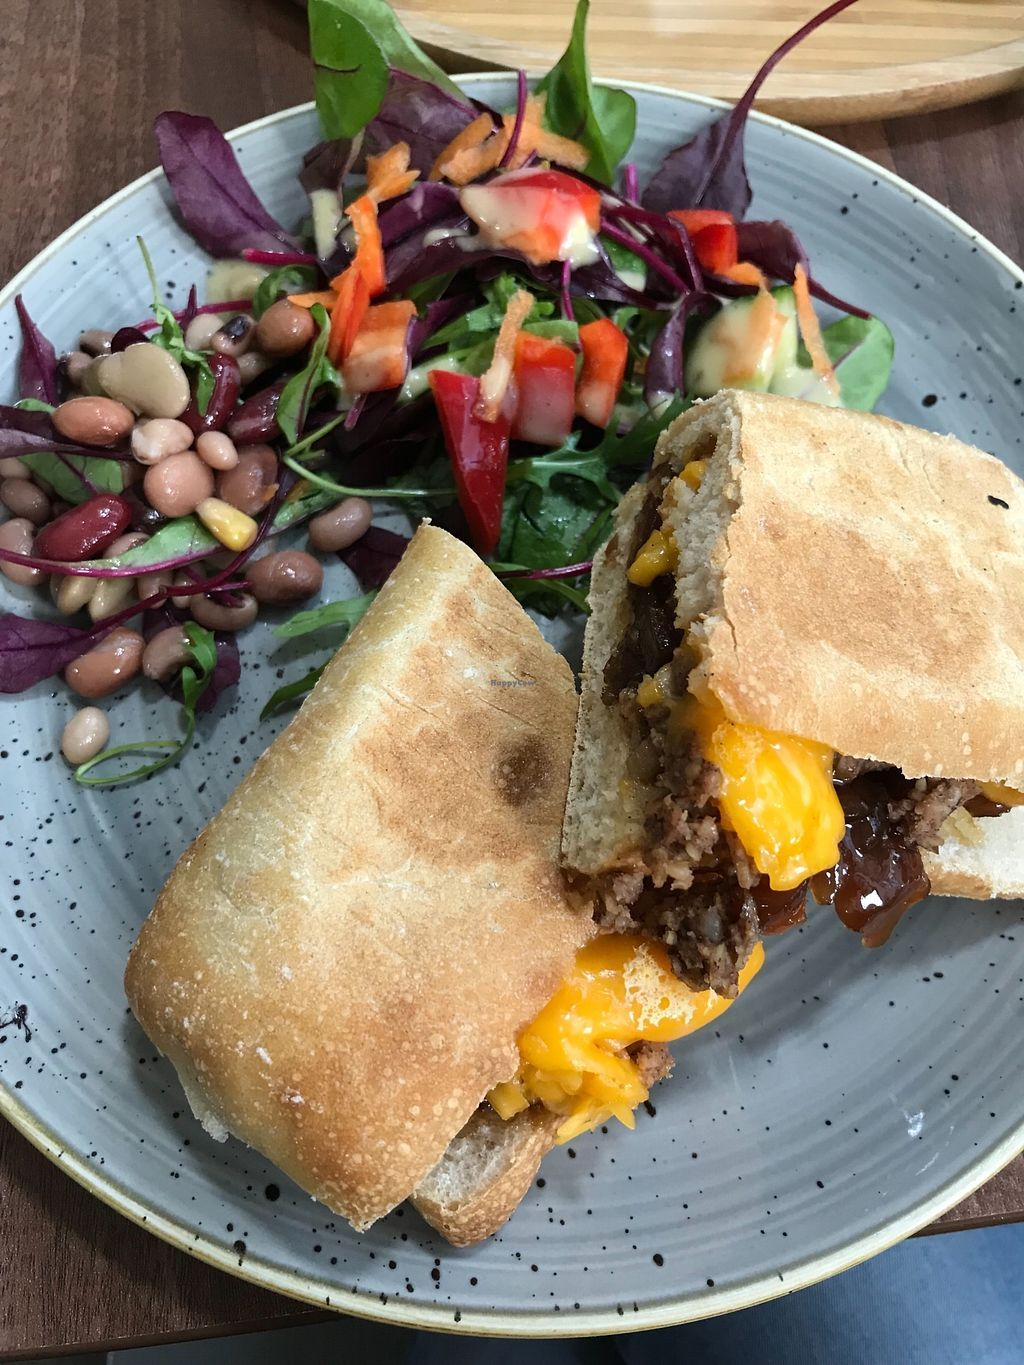 """Photo of The Flame Tree Cafe  by <a href=""""/members/profile/AshleighC"""">AshleighC</a> <br/>Vegan Haggis and Violife Panini - one of my favourites! <br/> February 19, 2018  - <a href='/contact/abuse/image/76399/361398'>Report</a>"""